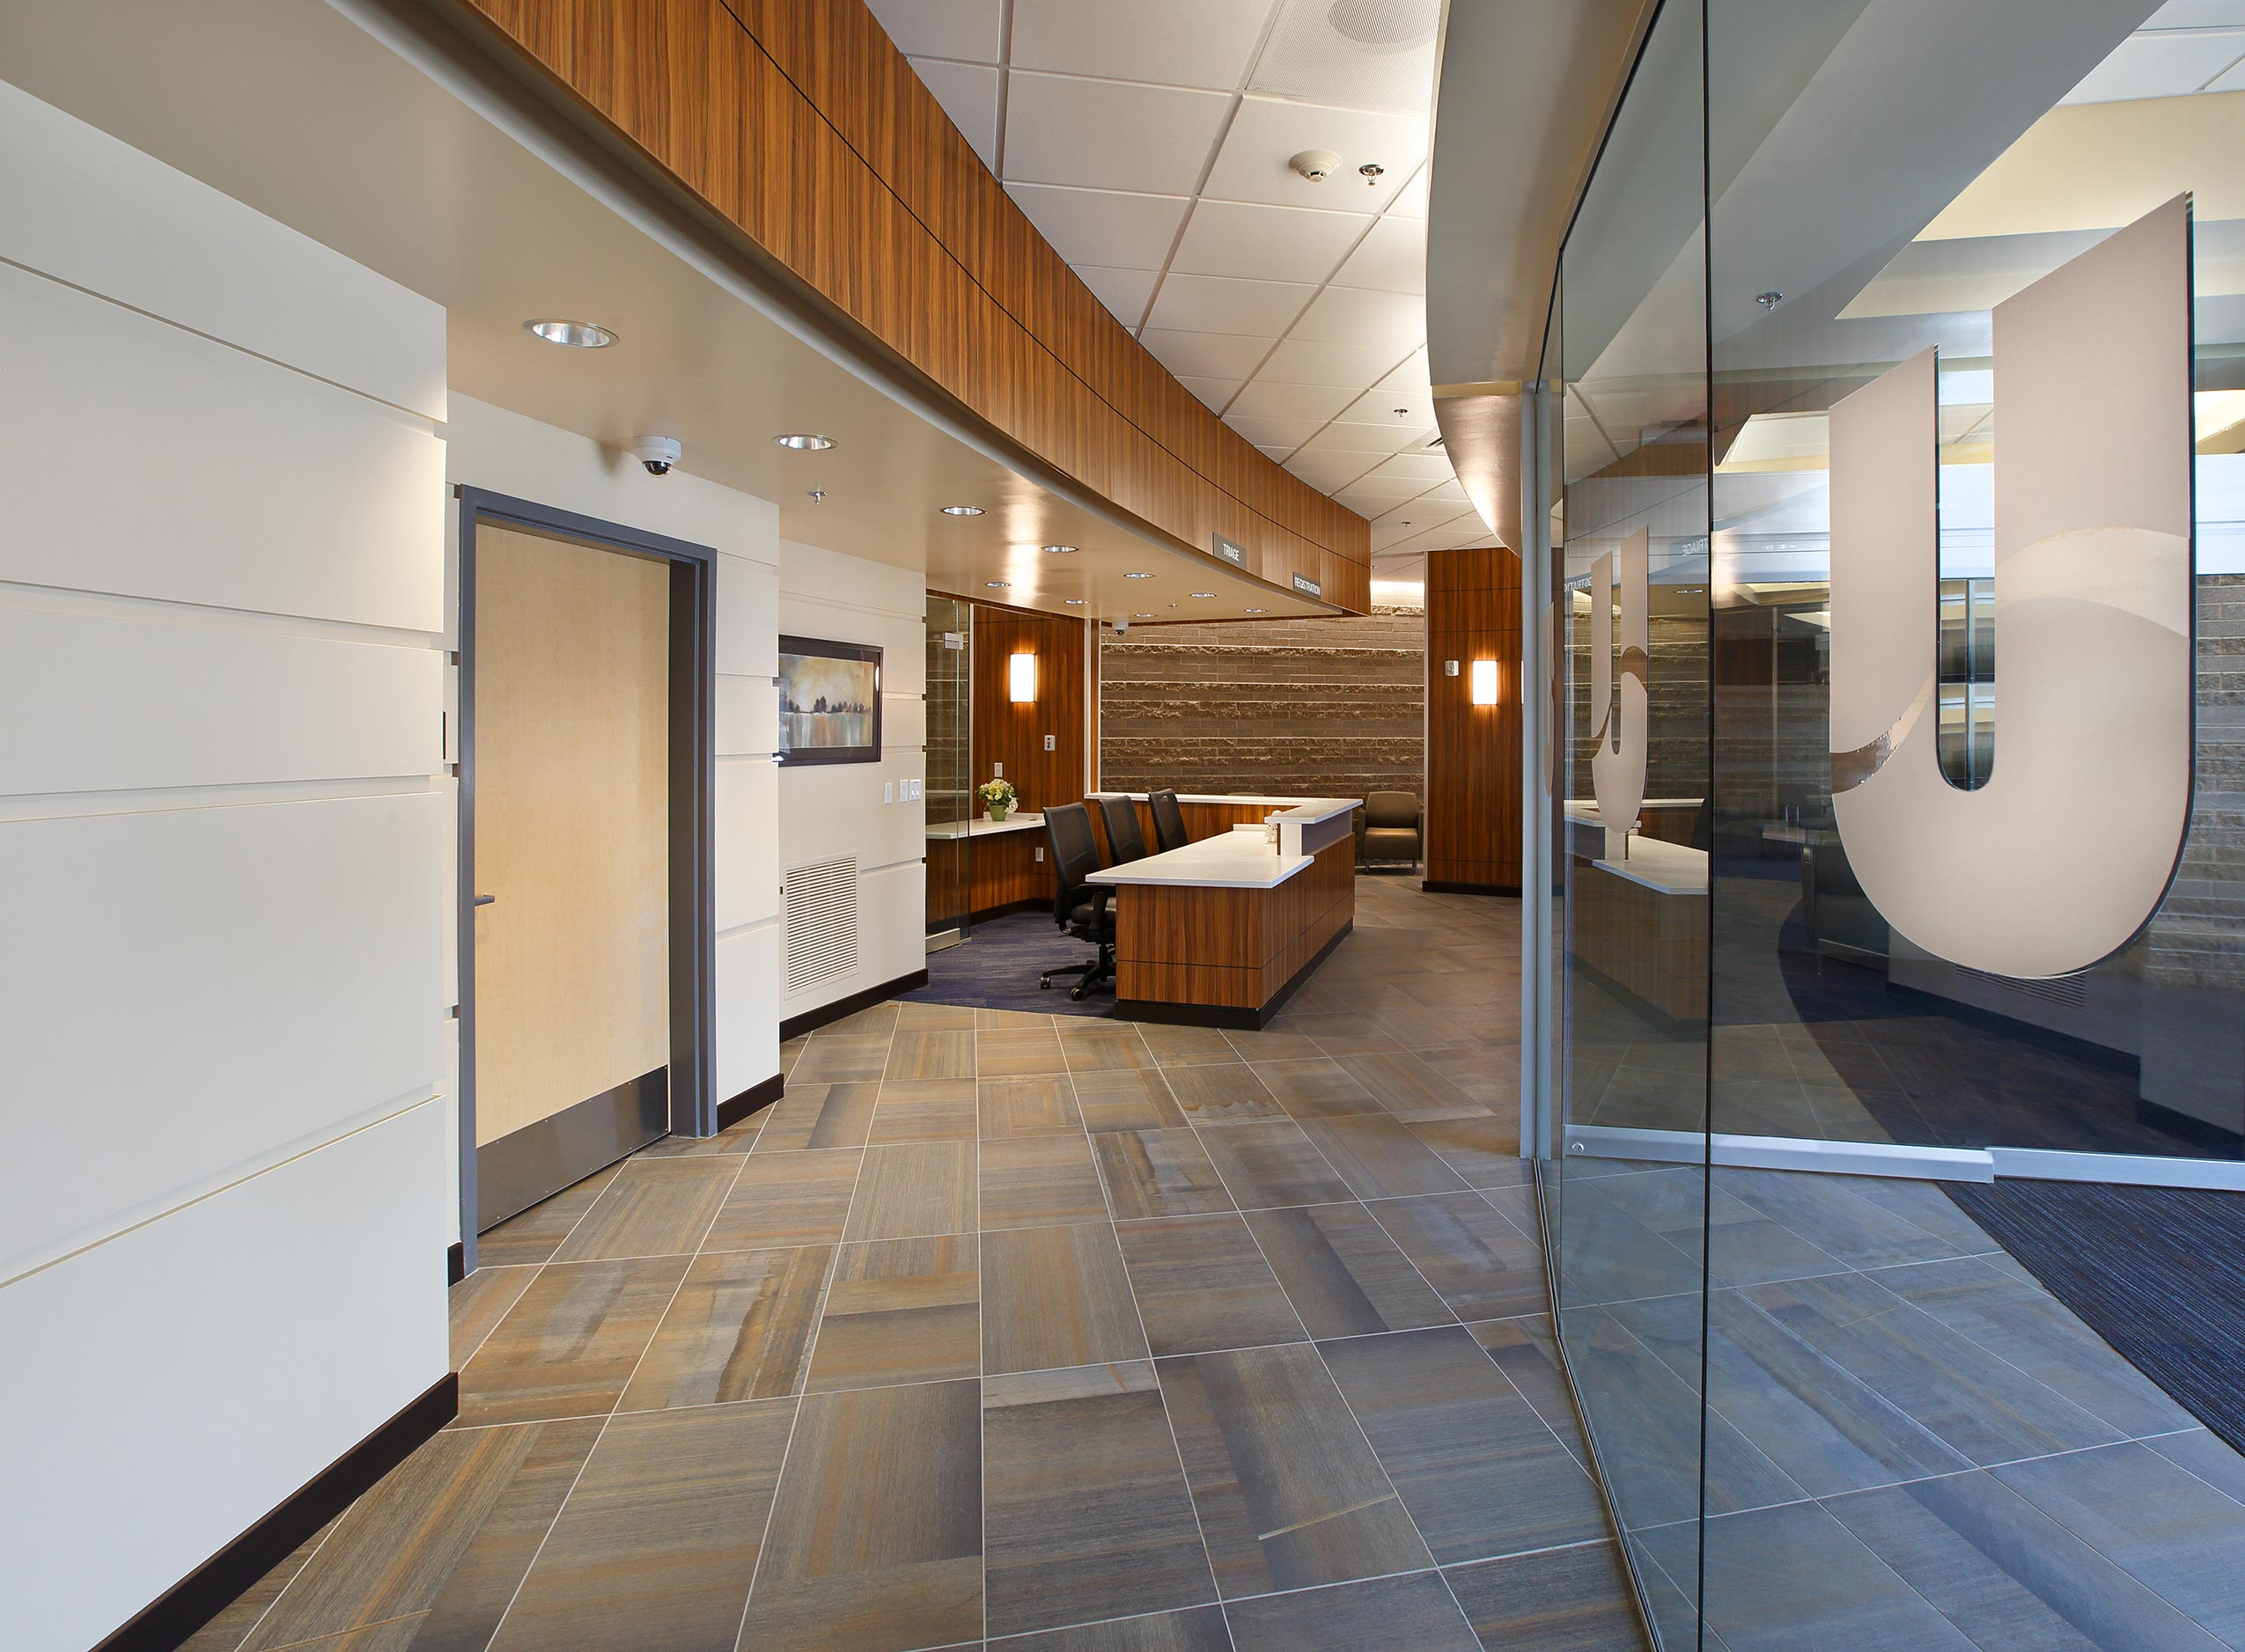 Uintah Basin Medical Center Healthcare Architecture